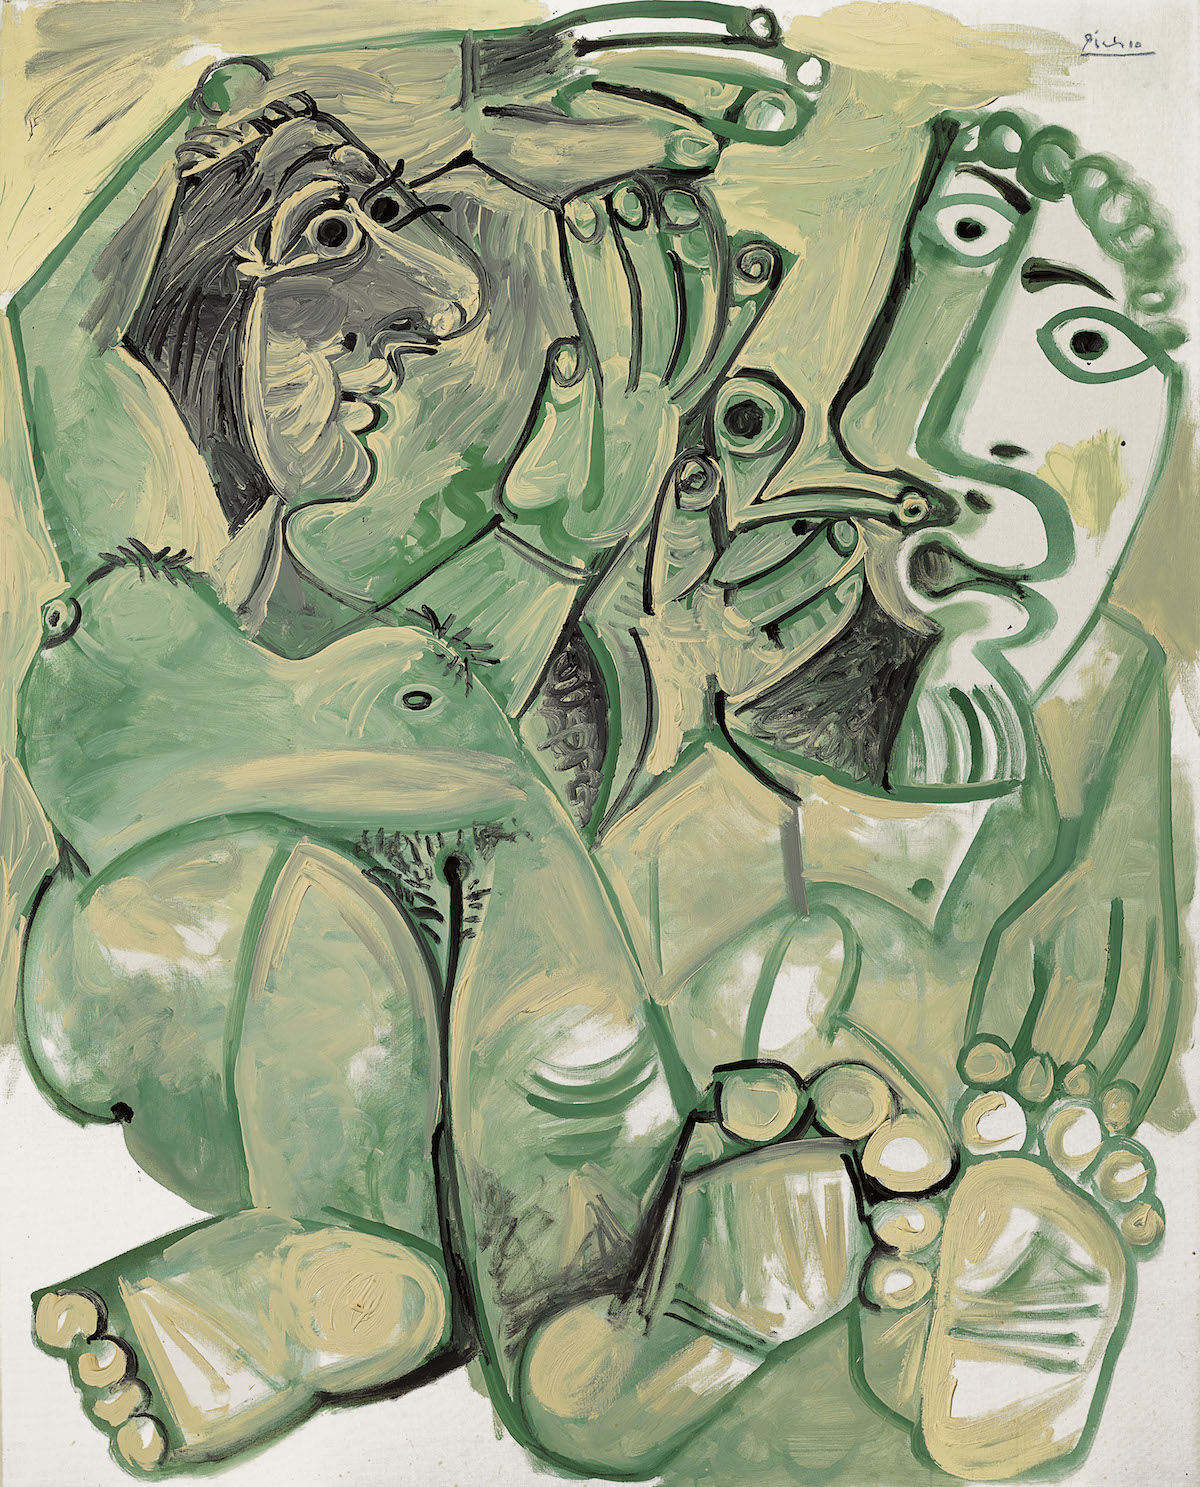 Pablo Picasso, Homme et femme nus, 1968. Est. £10 million–15 million, sold for £12.5 million. Courtesy Christie's Images Ltd. 2019..jpeg